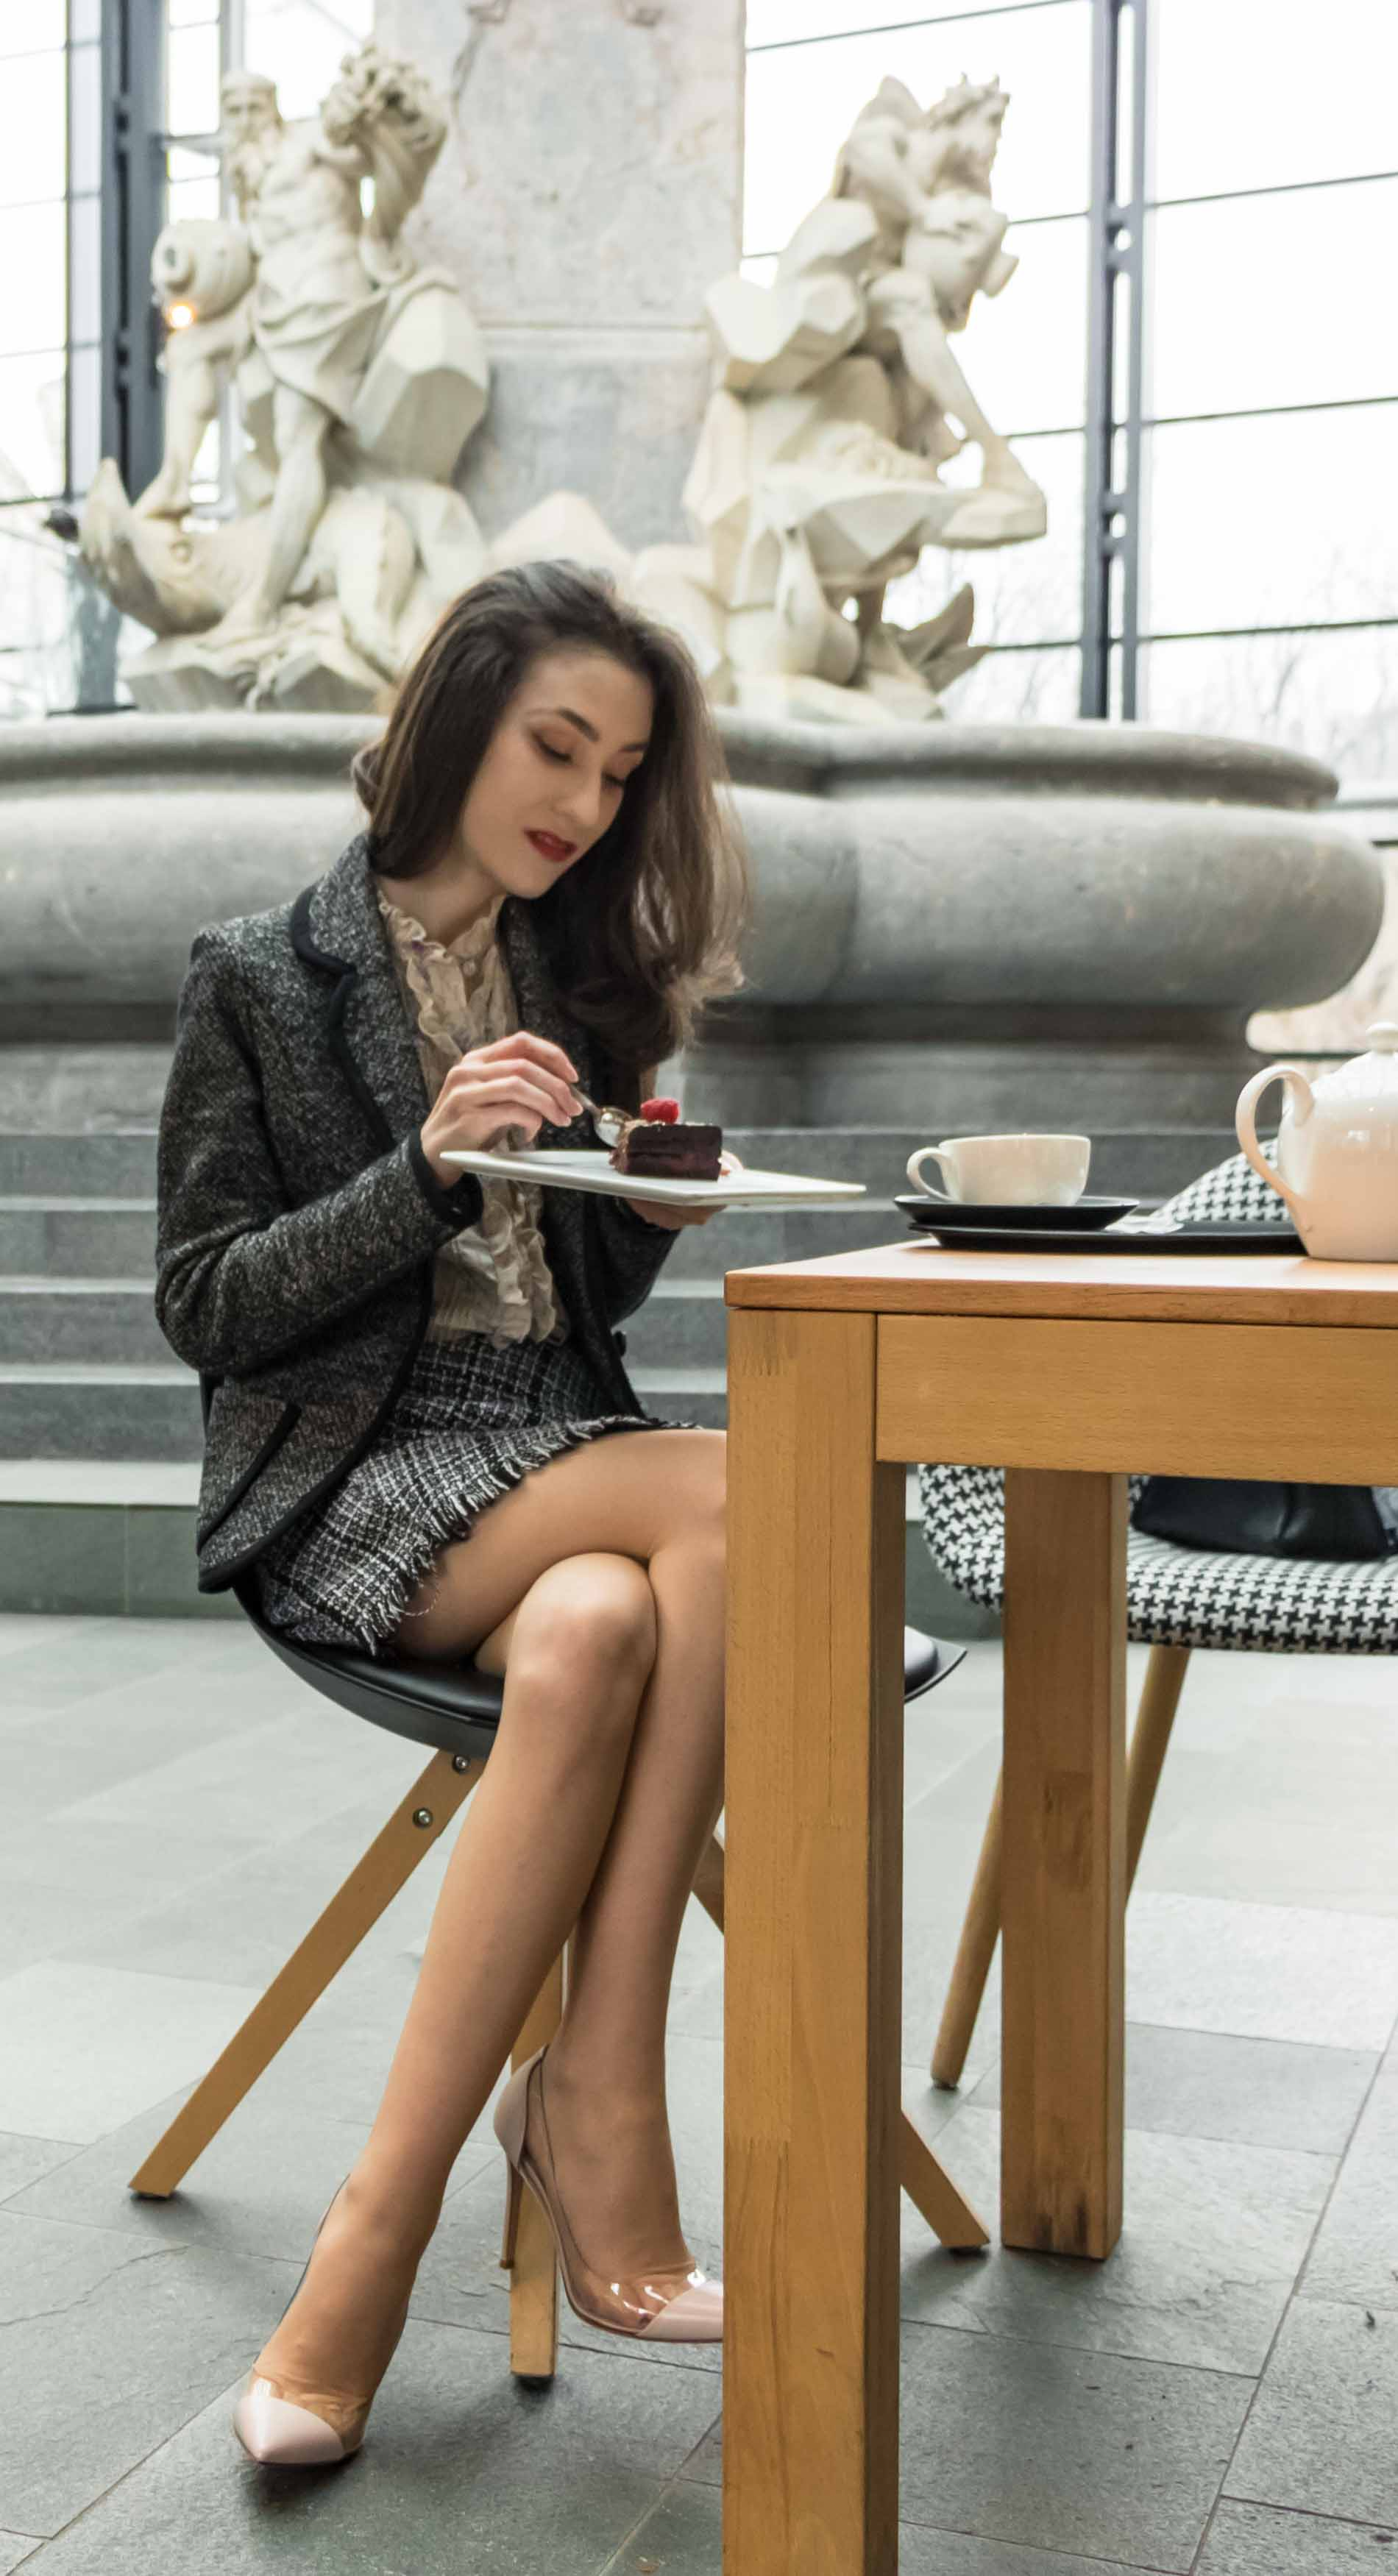 Fashion Blogger Veronika Lipar of Brunette from Wall Street wearing blush Gianvito Rossi Plexi 100 leather and PVC pump shoes, tweed plaid mini skirt from Storets, black and white Marella tweed jacket while having eating a cake